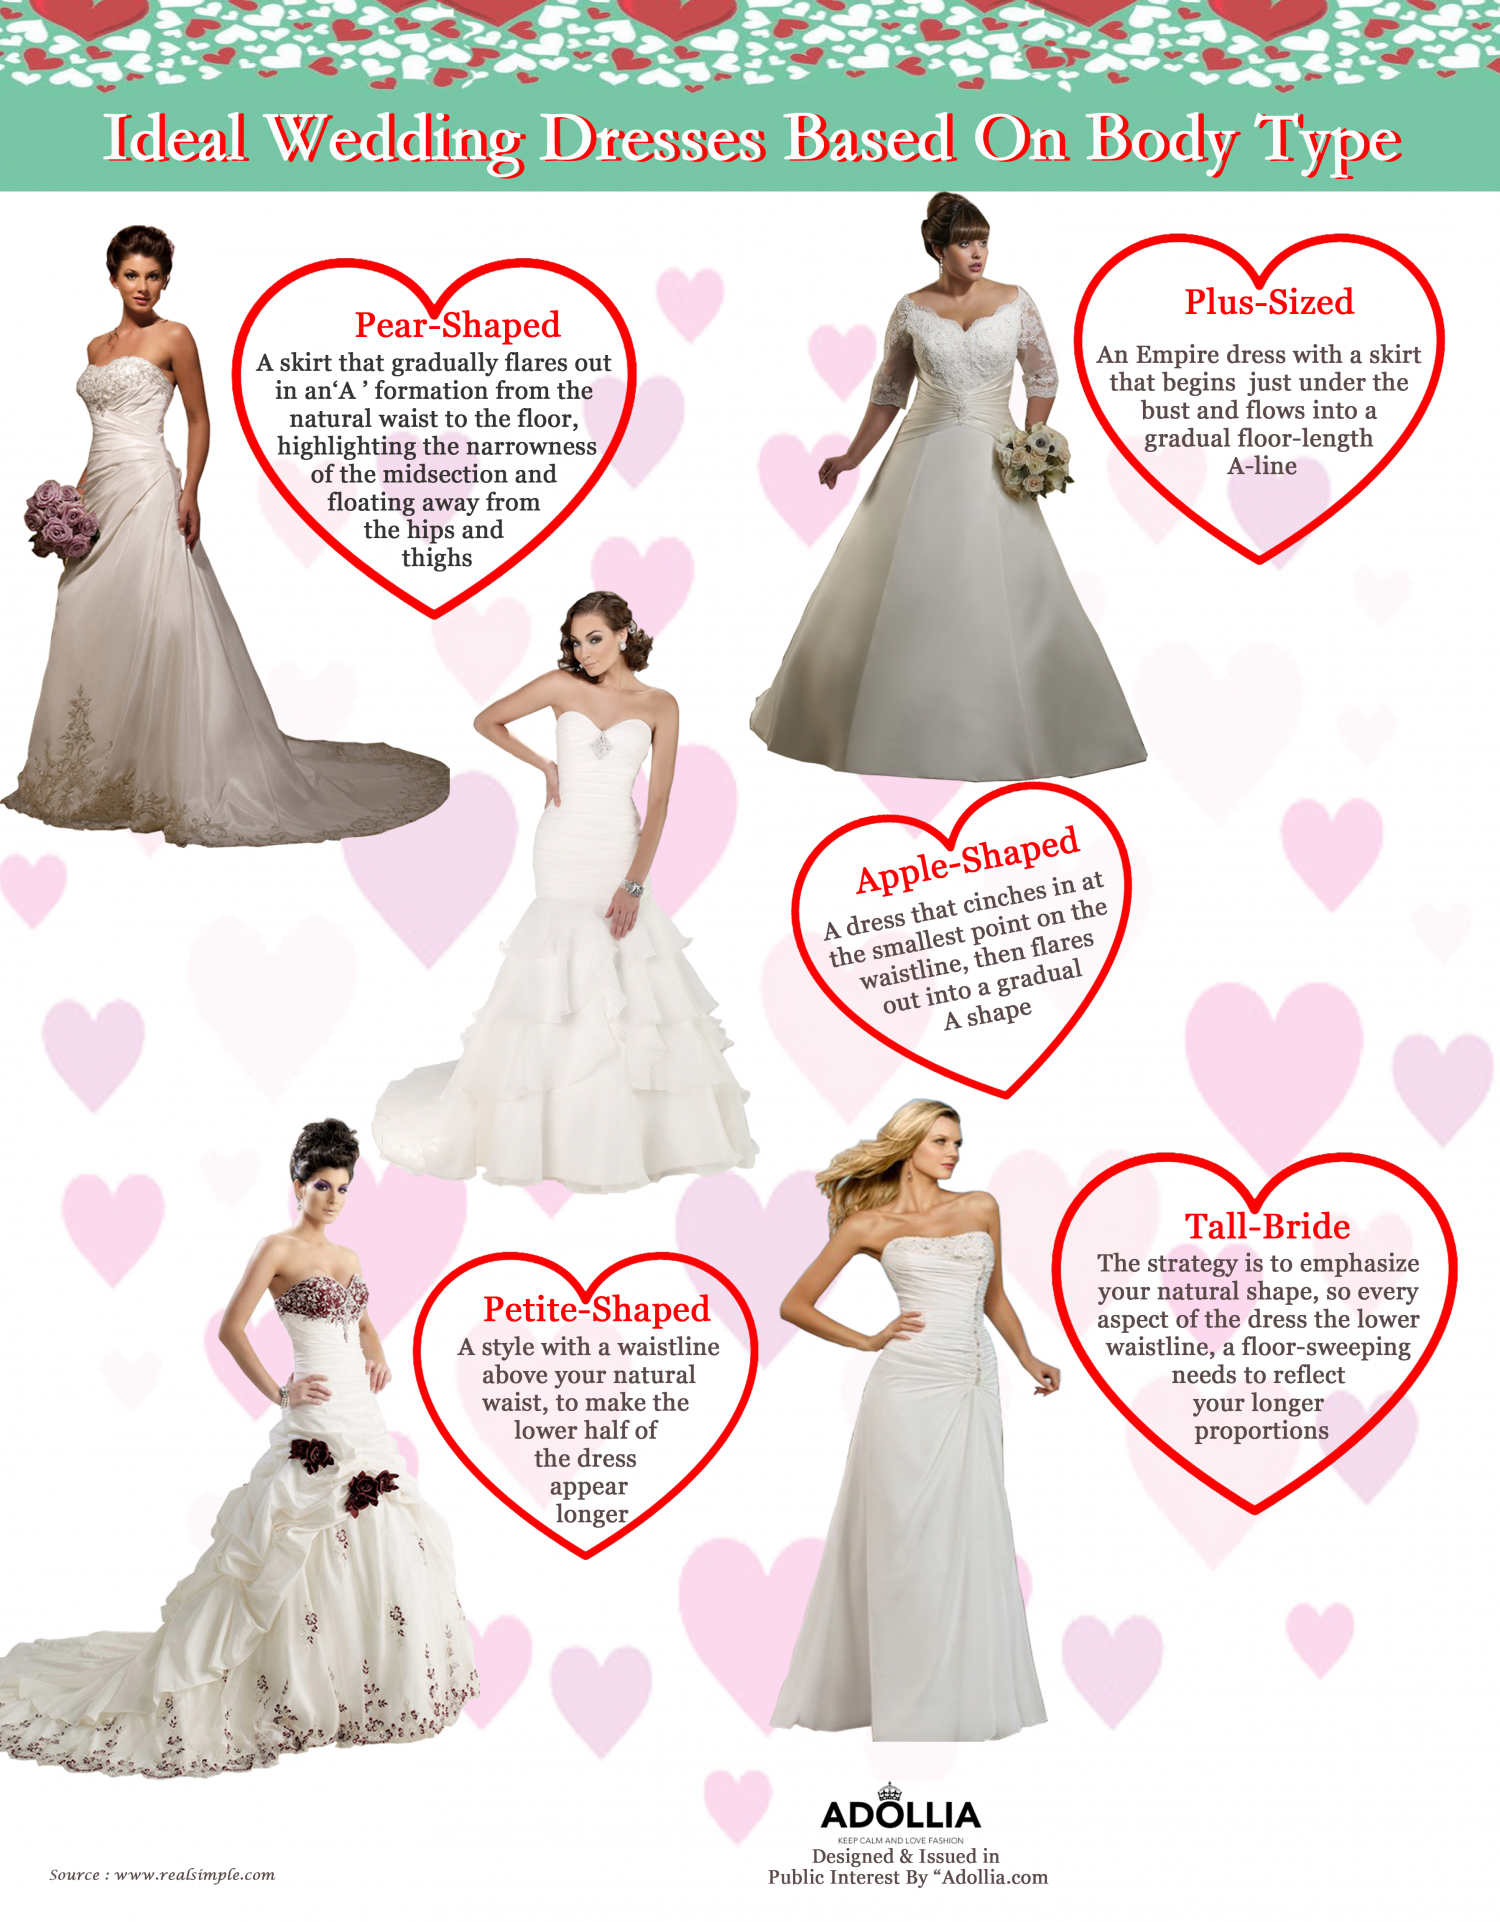 Ideal Wedding Dress Beased on Body Type Infographic